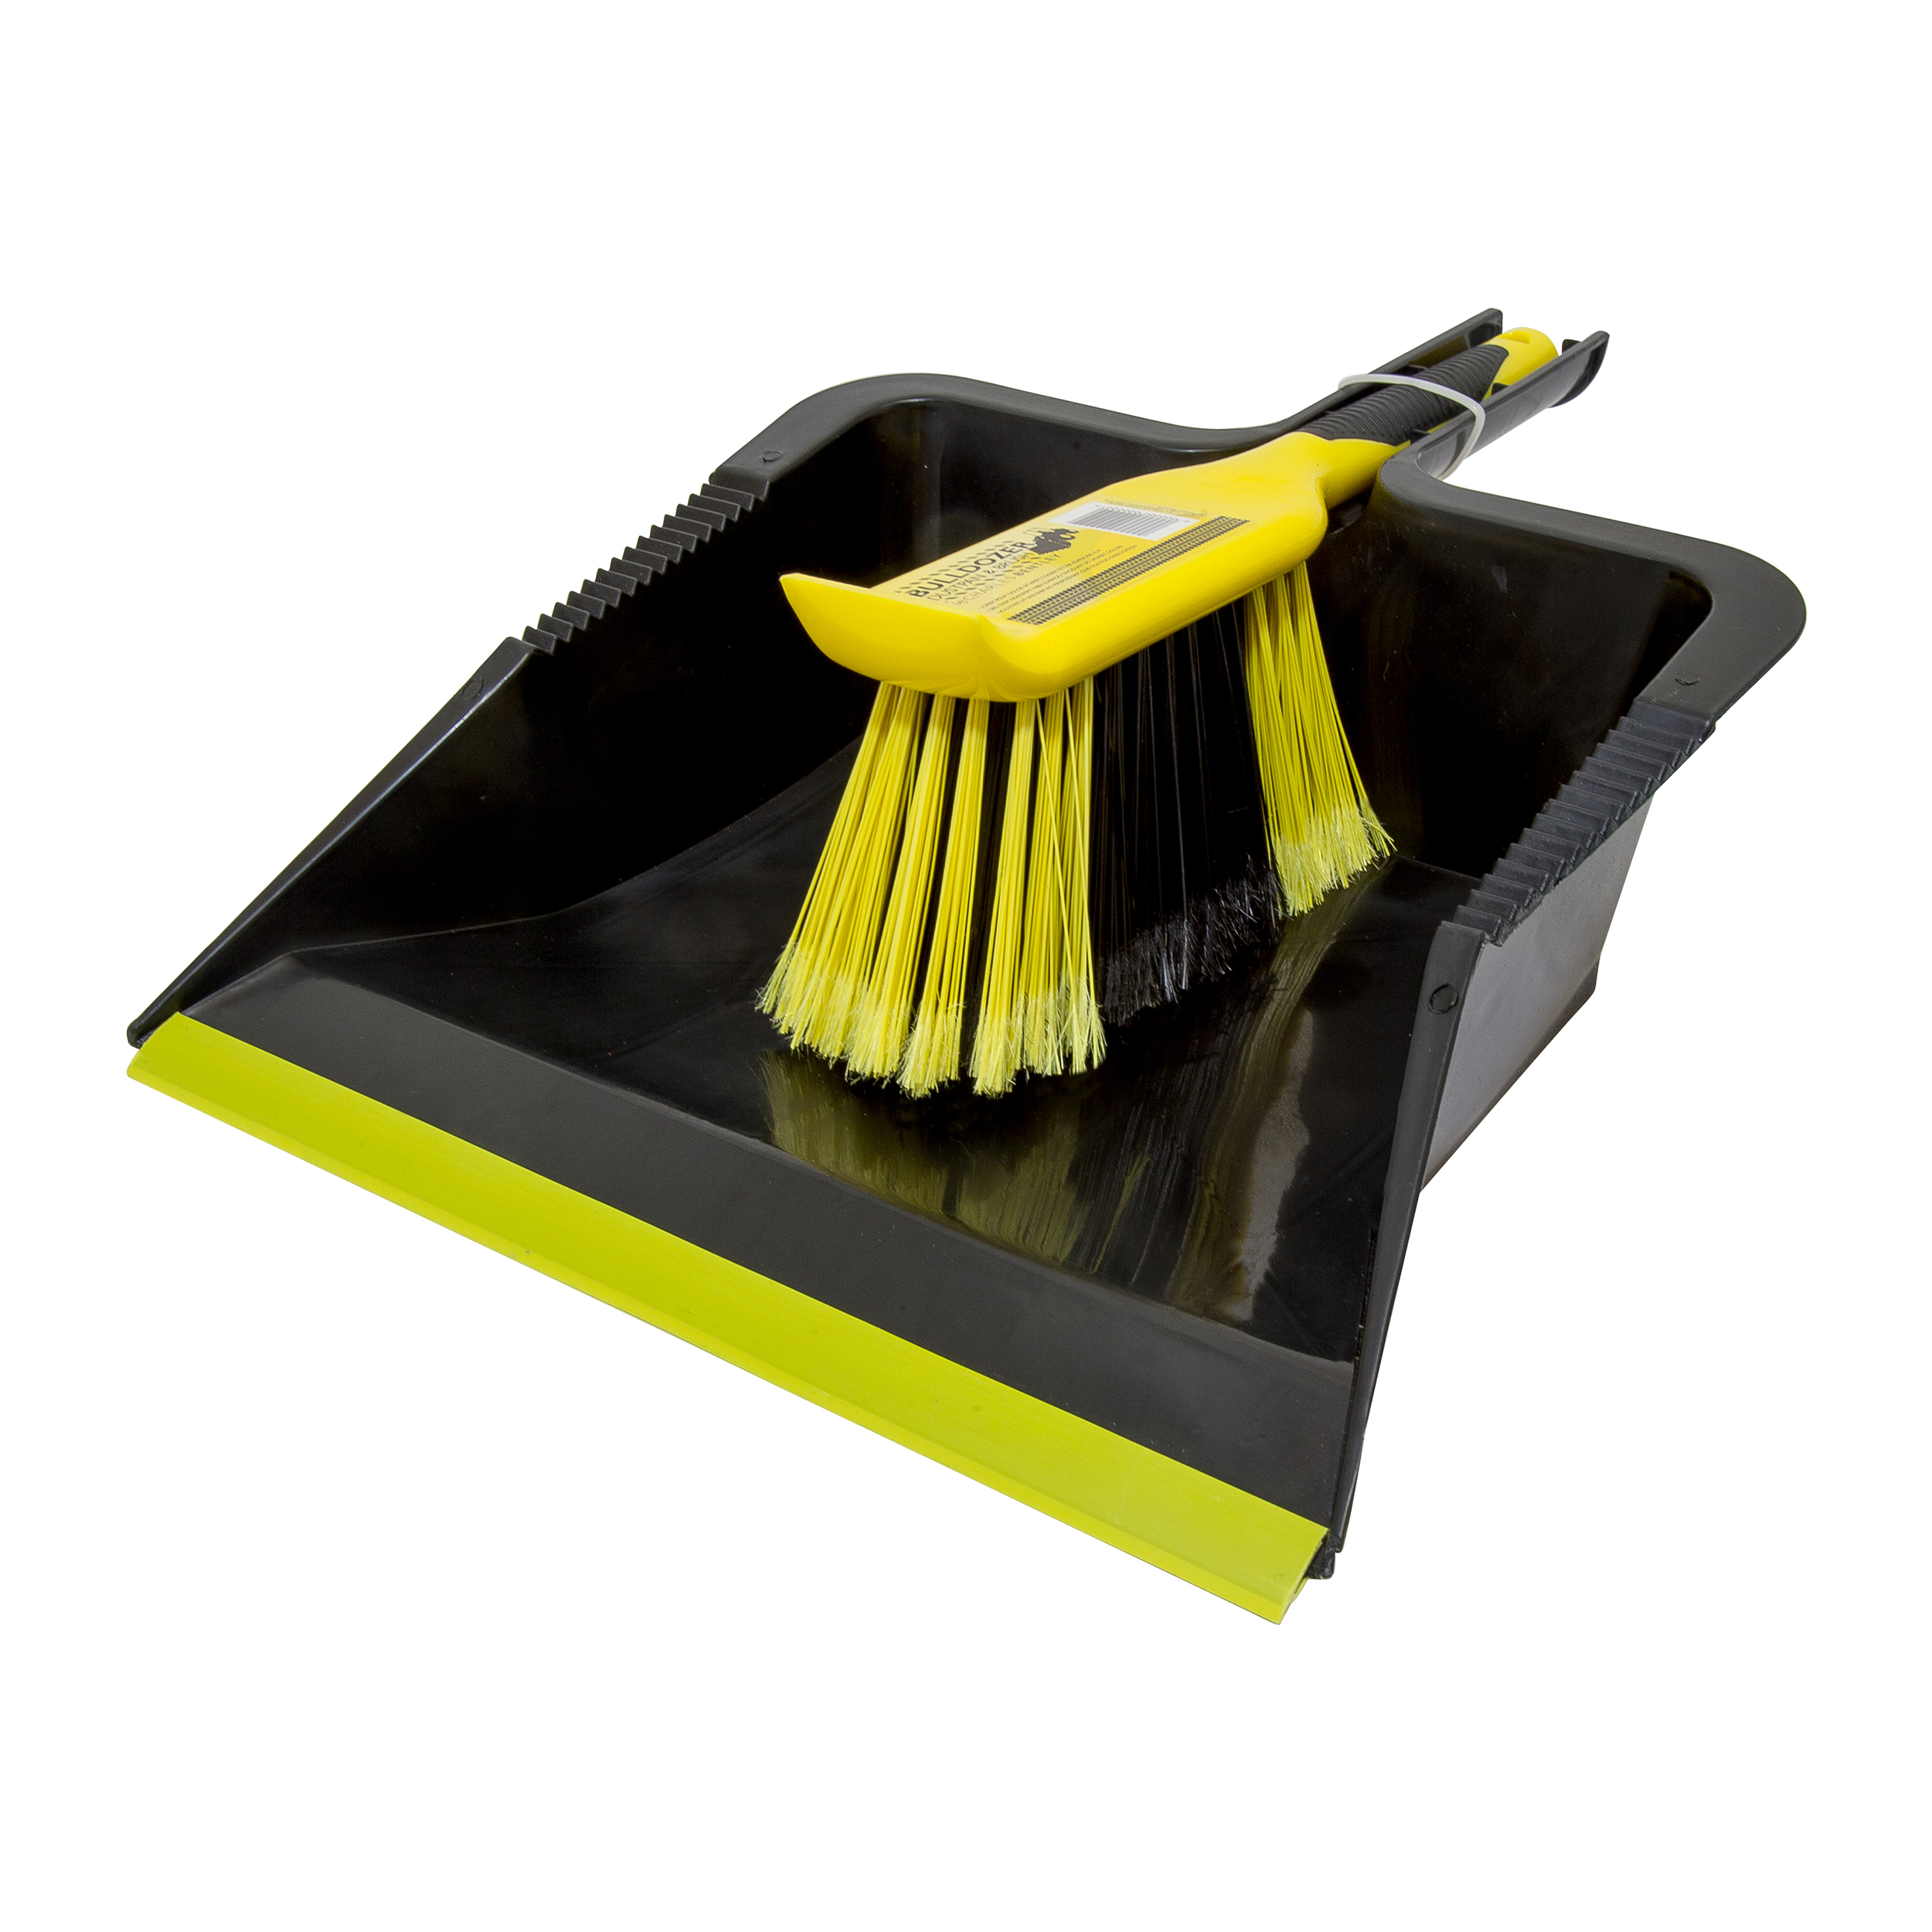 Mop heads Bentley Bulldozer Dustpan & Brush Set Ref 518014